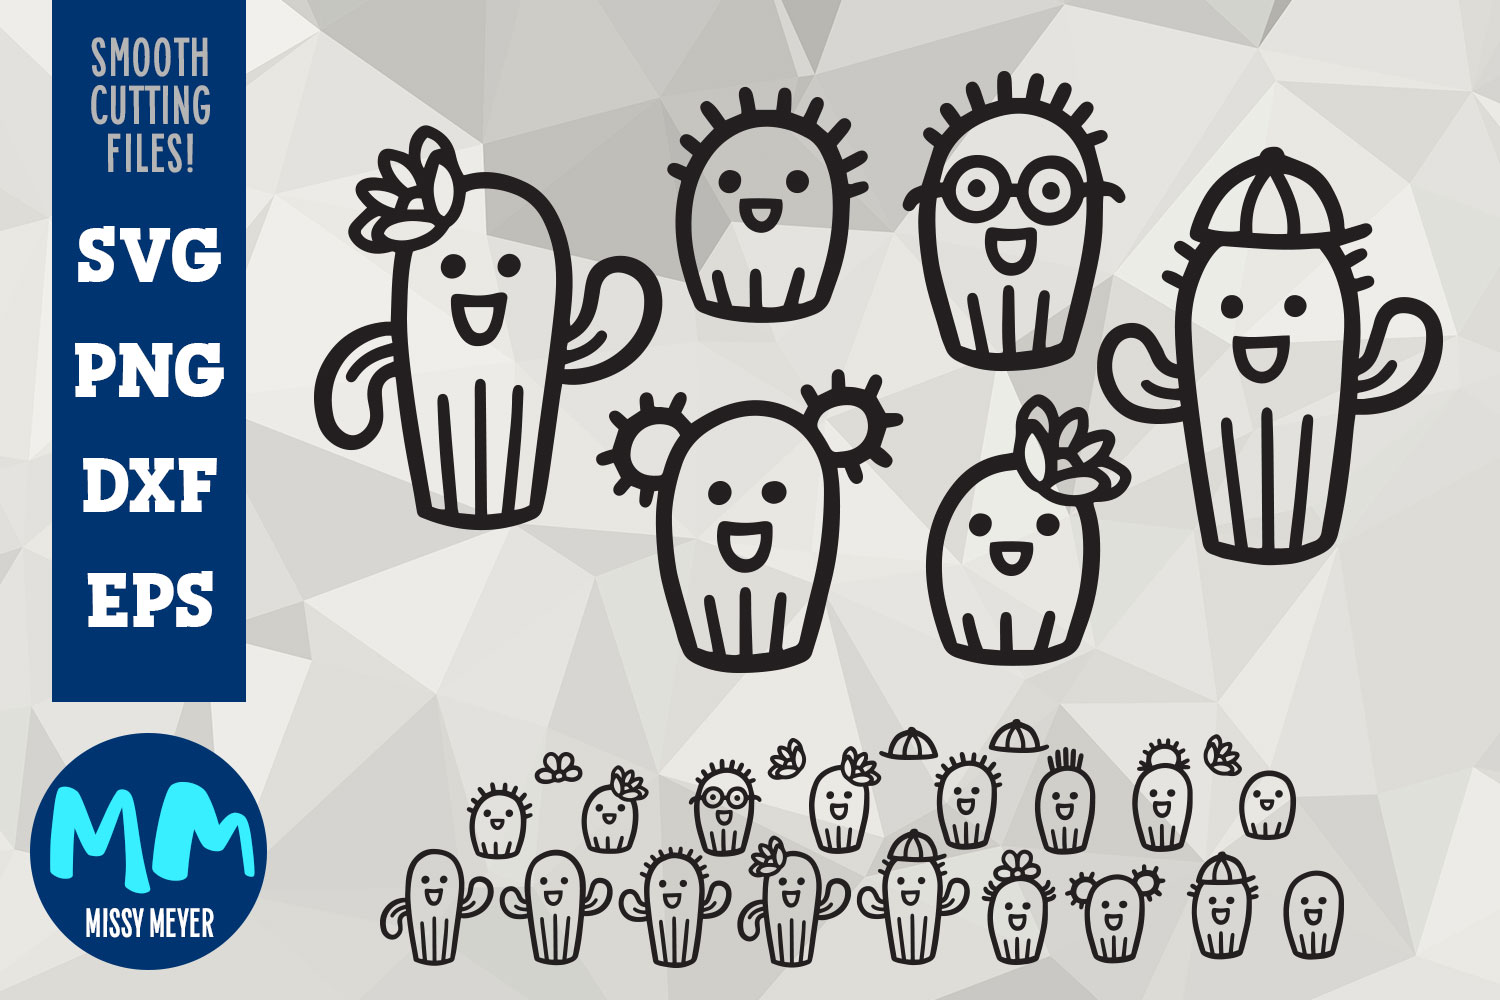 Cactus Family Cartoon Set - cut files for decals! example image 1